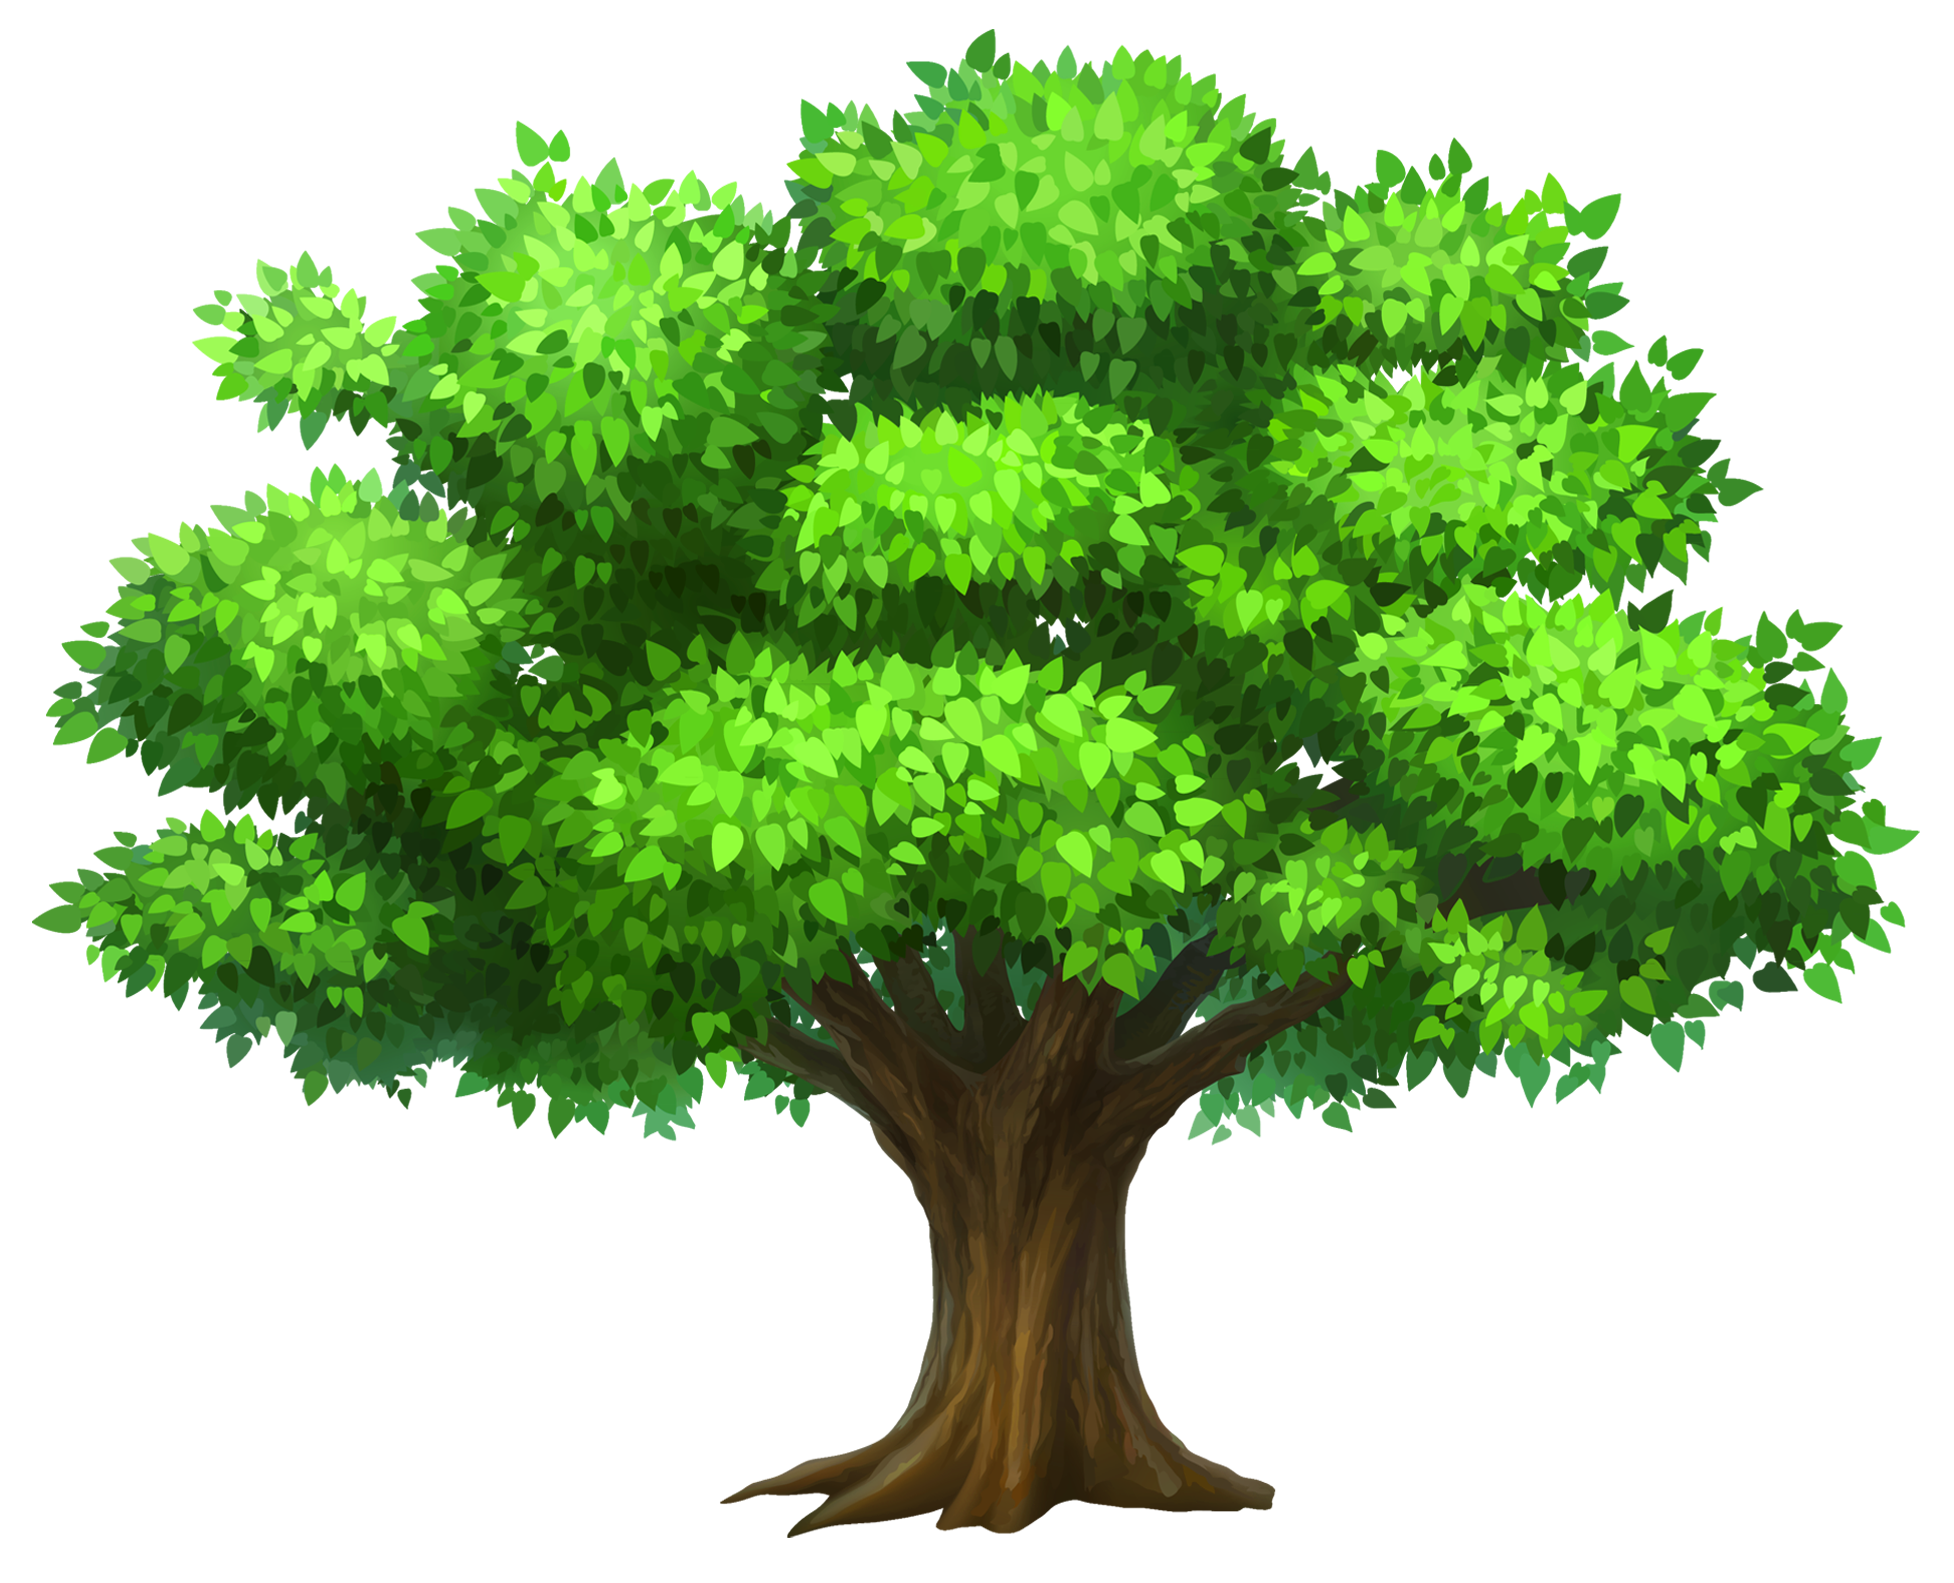 Bare Tree Clipart Free Clipart Image